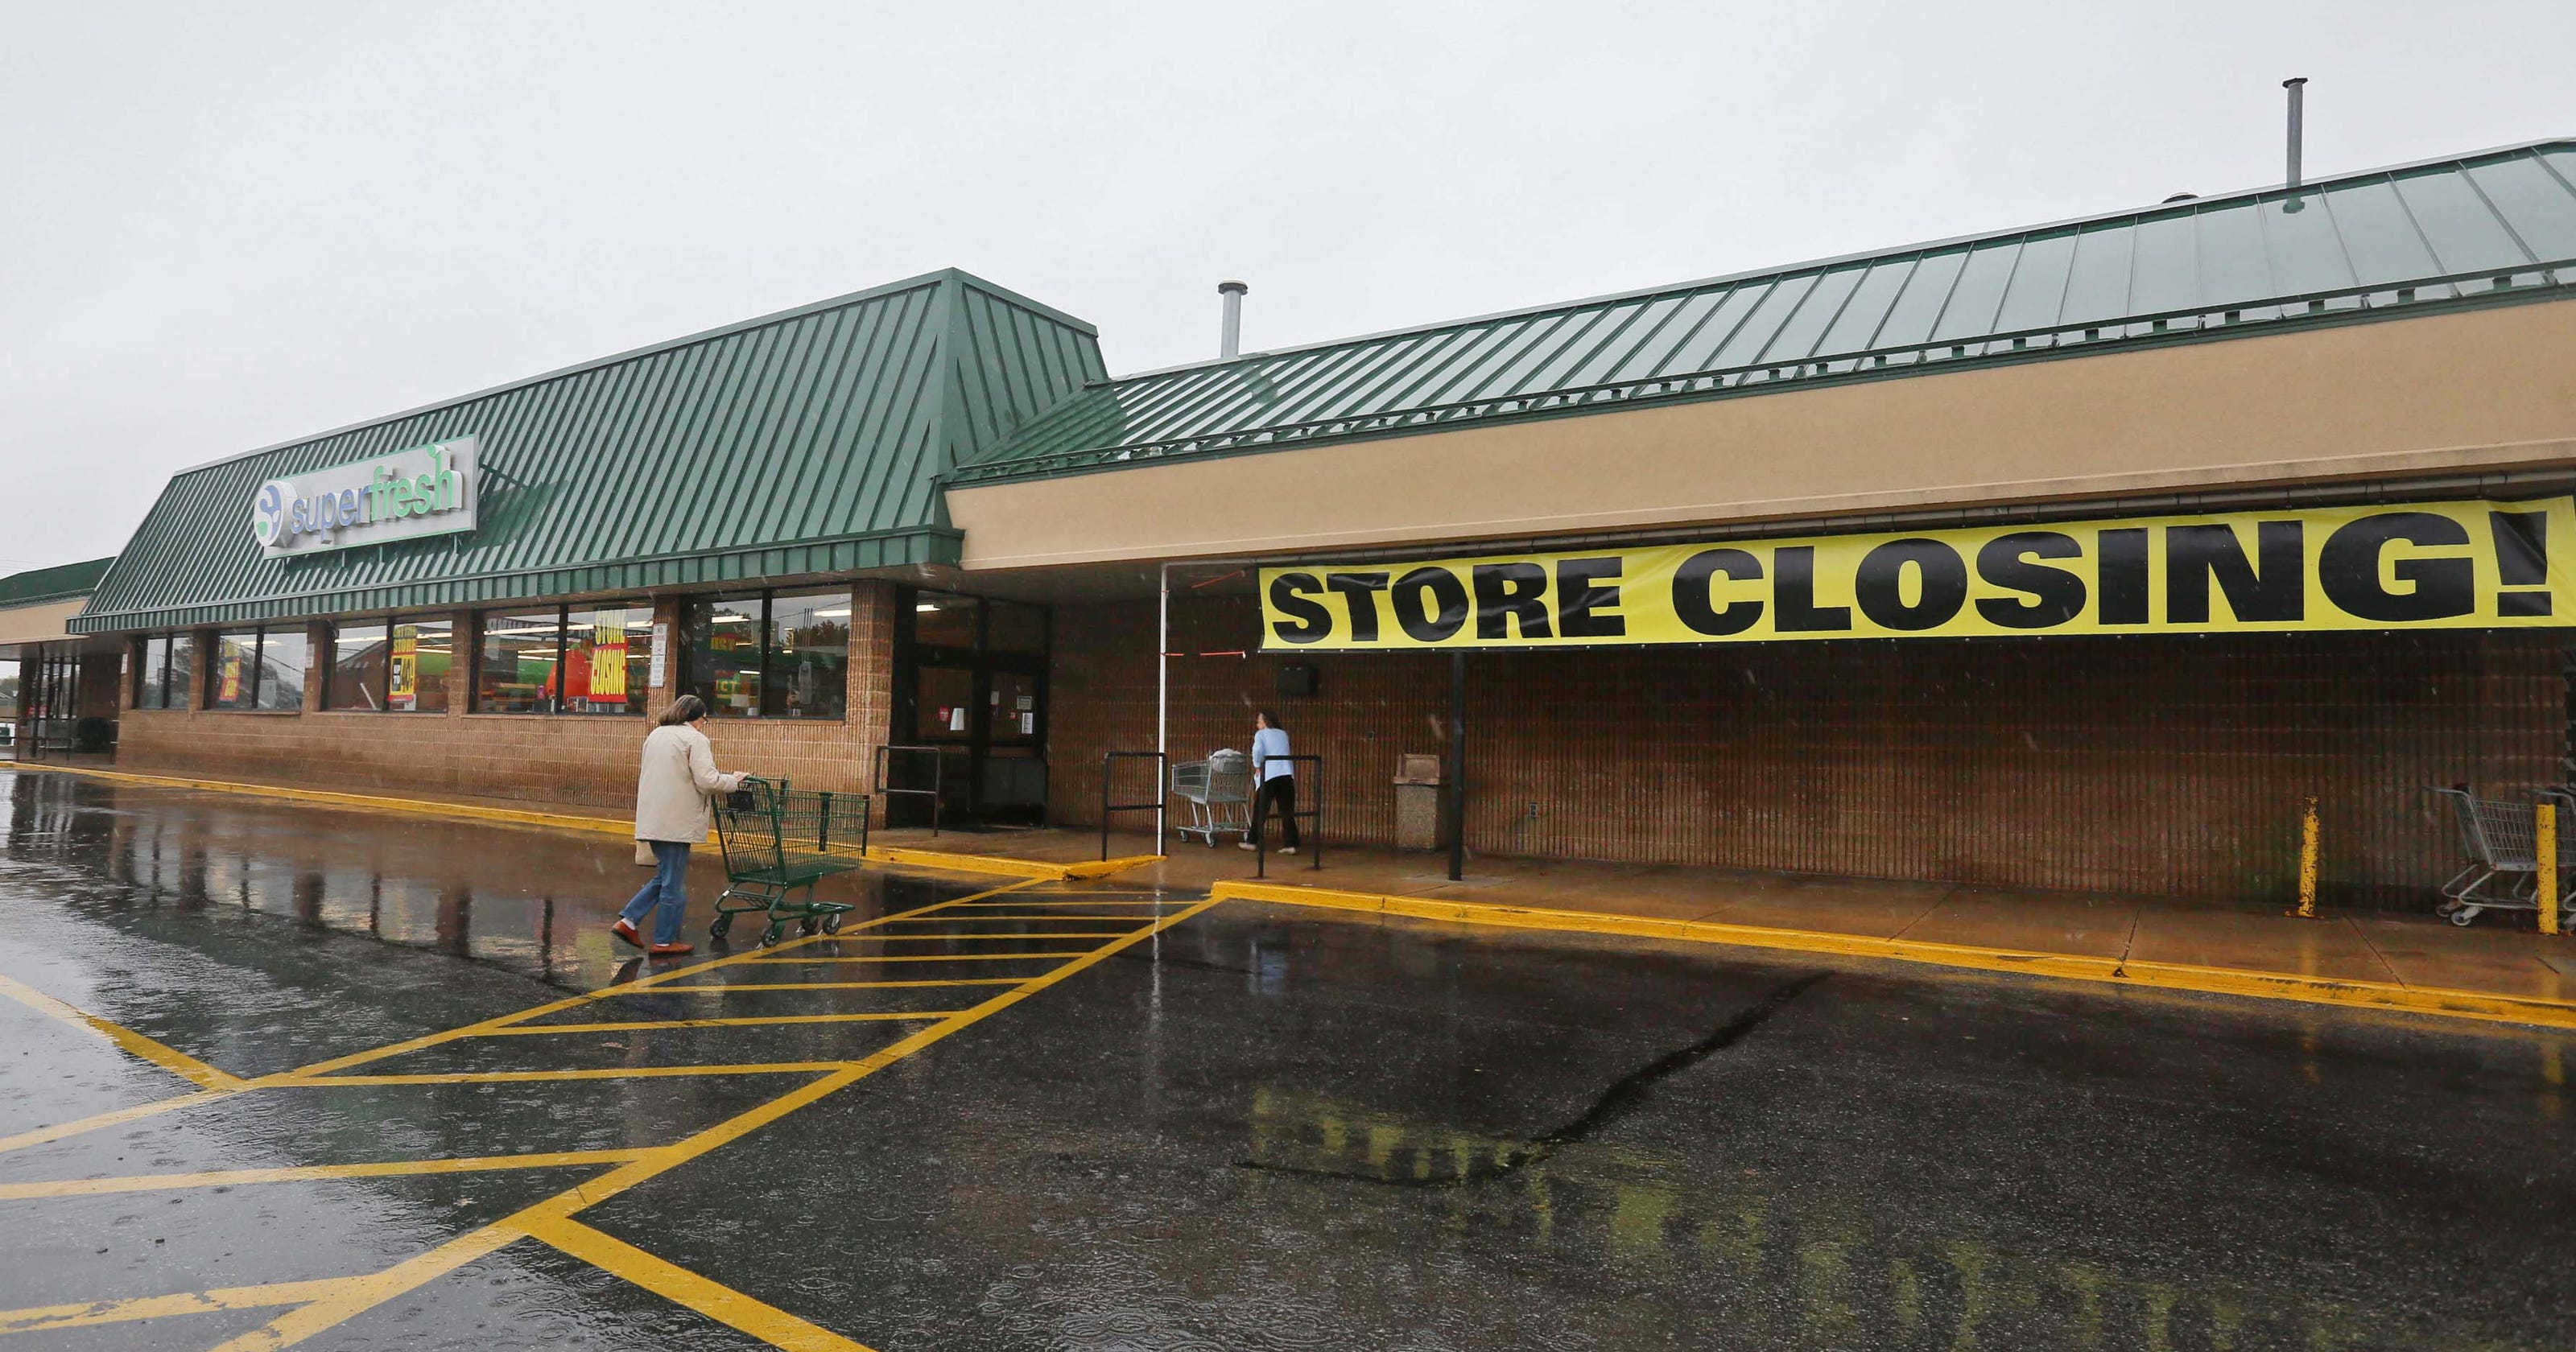 3 more NCCo supermarkets slated to close soon